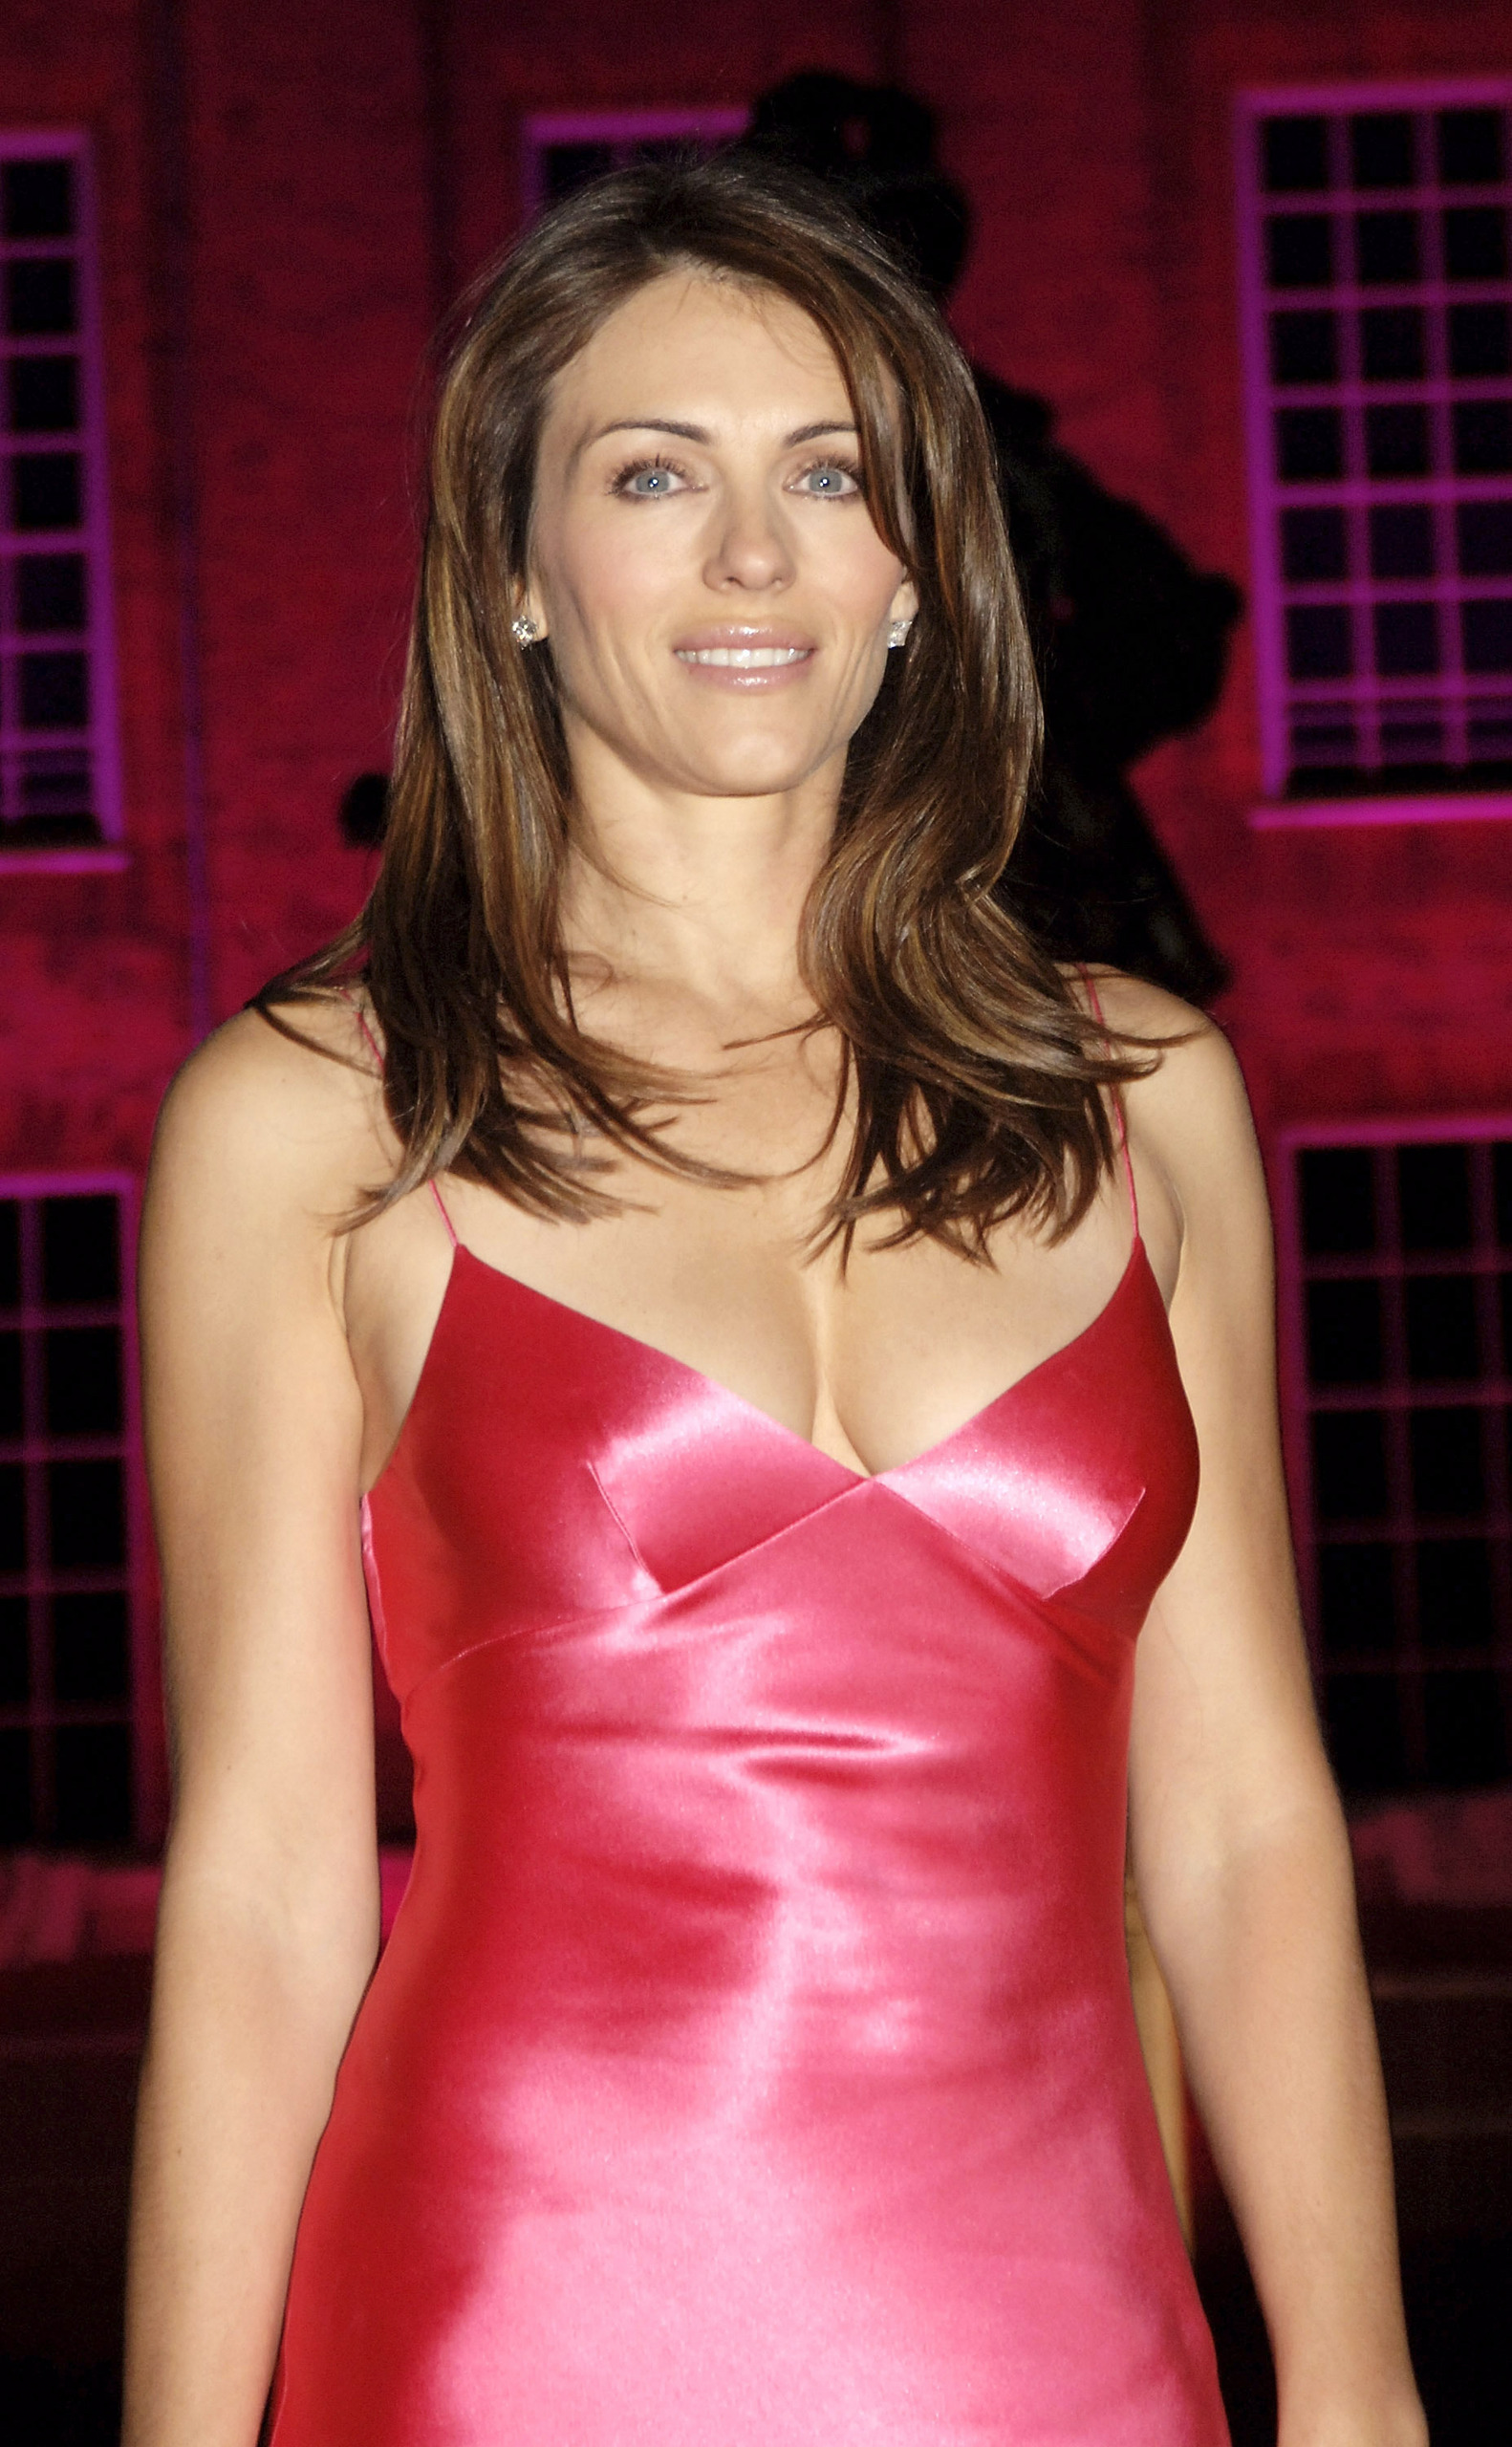 elizabeth hurley - photo #38